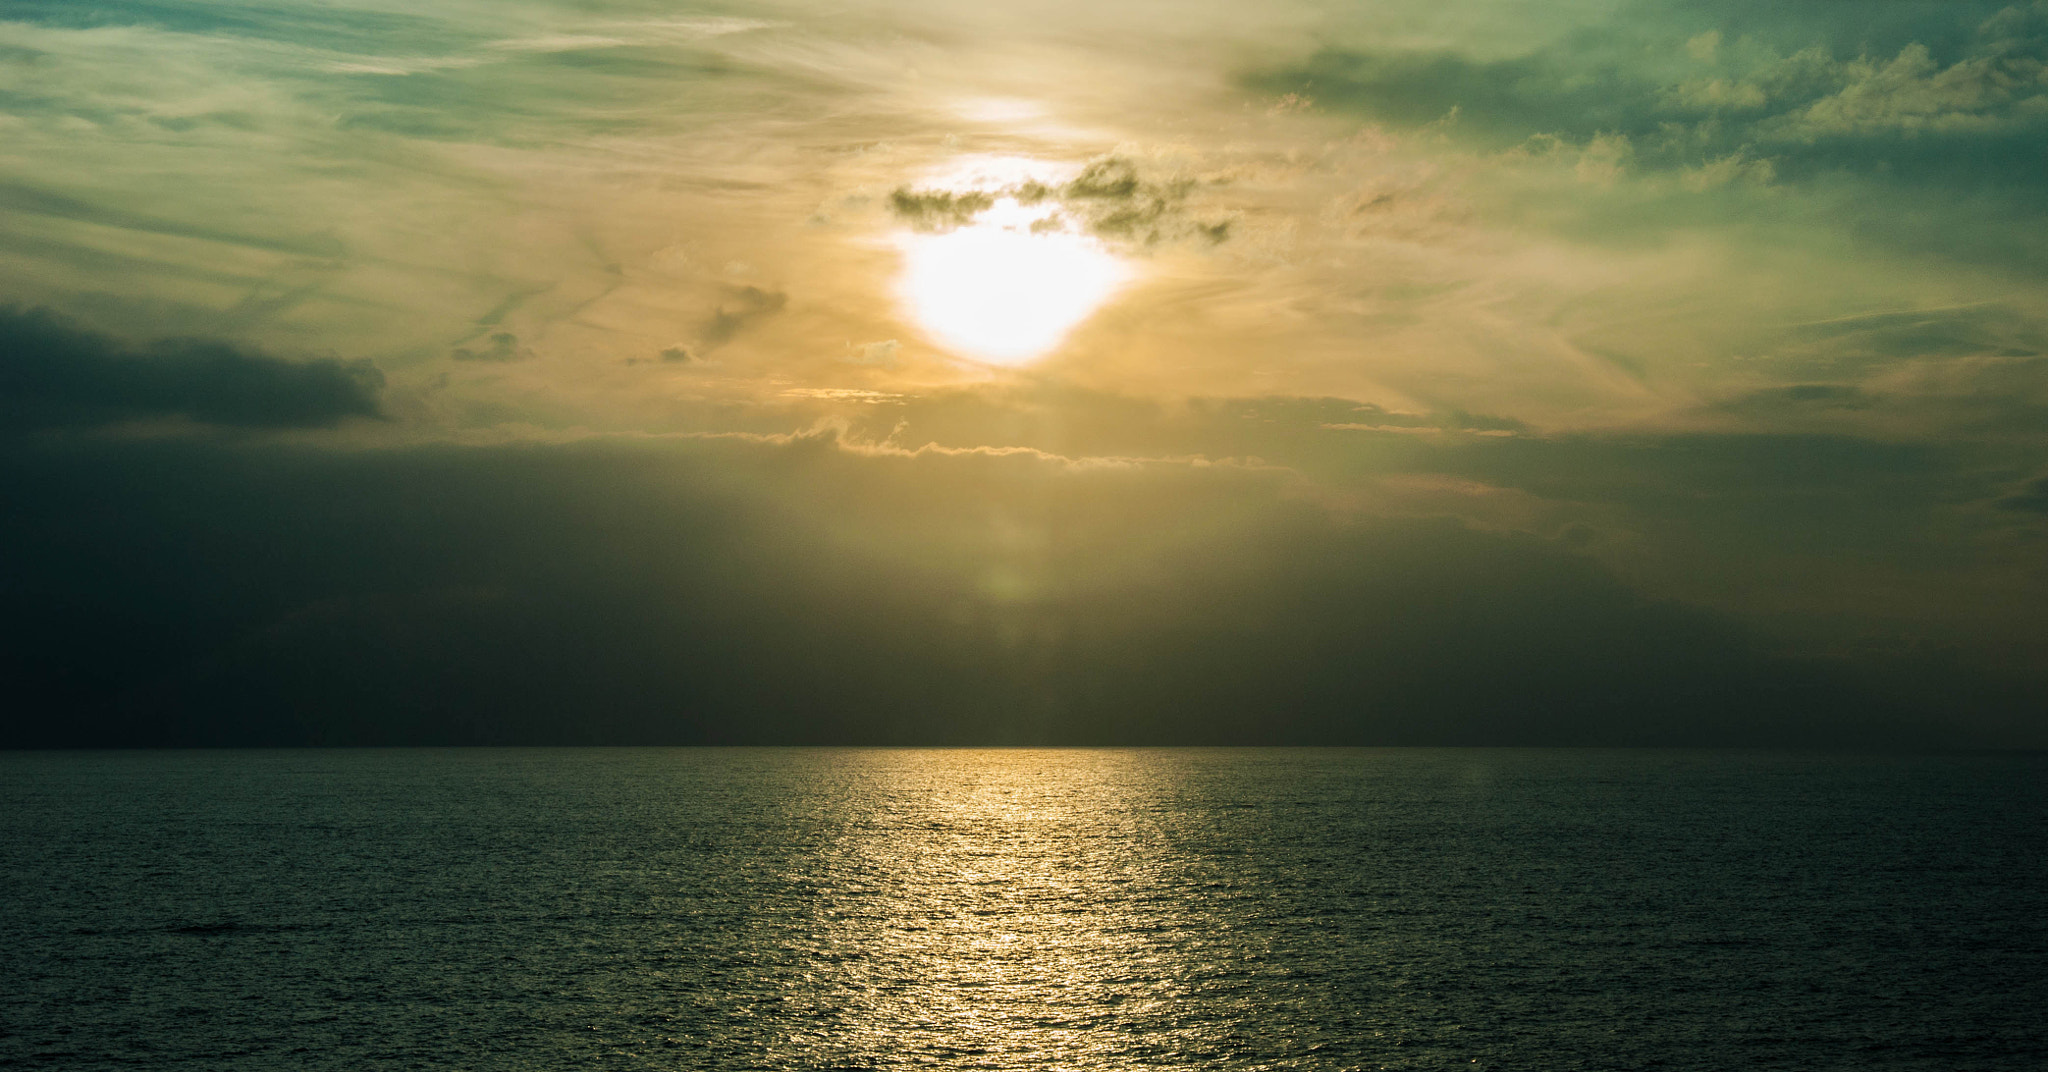 Photograph Sunset in the sea by Aviv Osterman on 500px